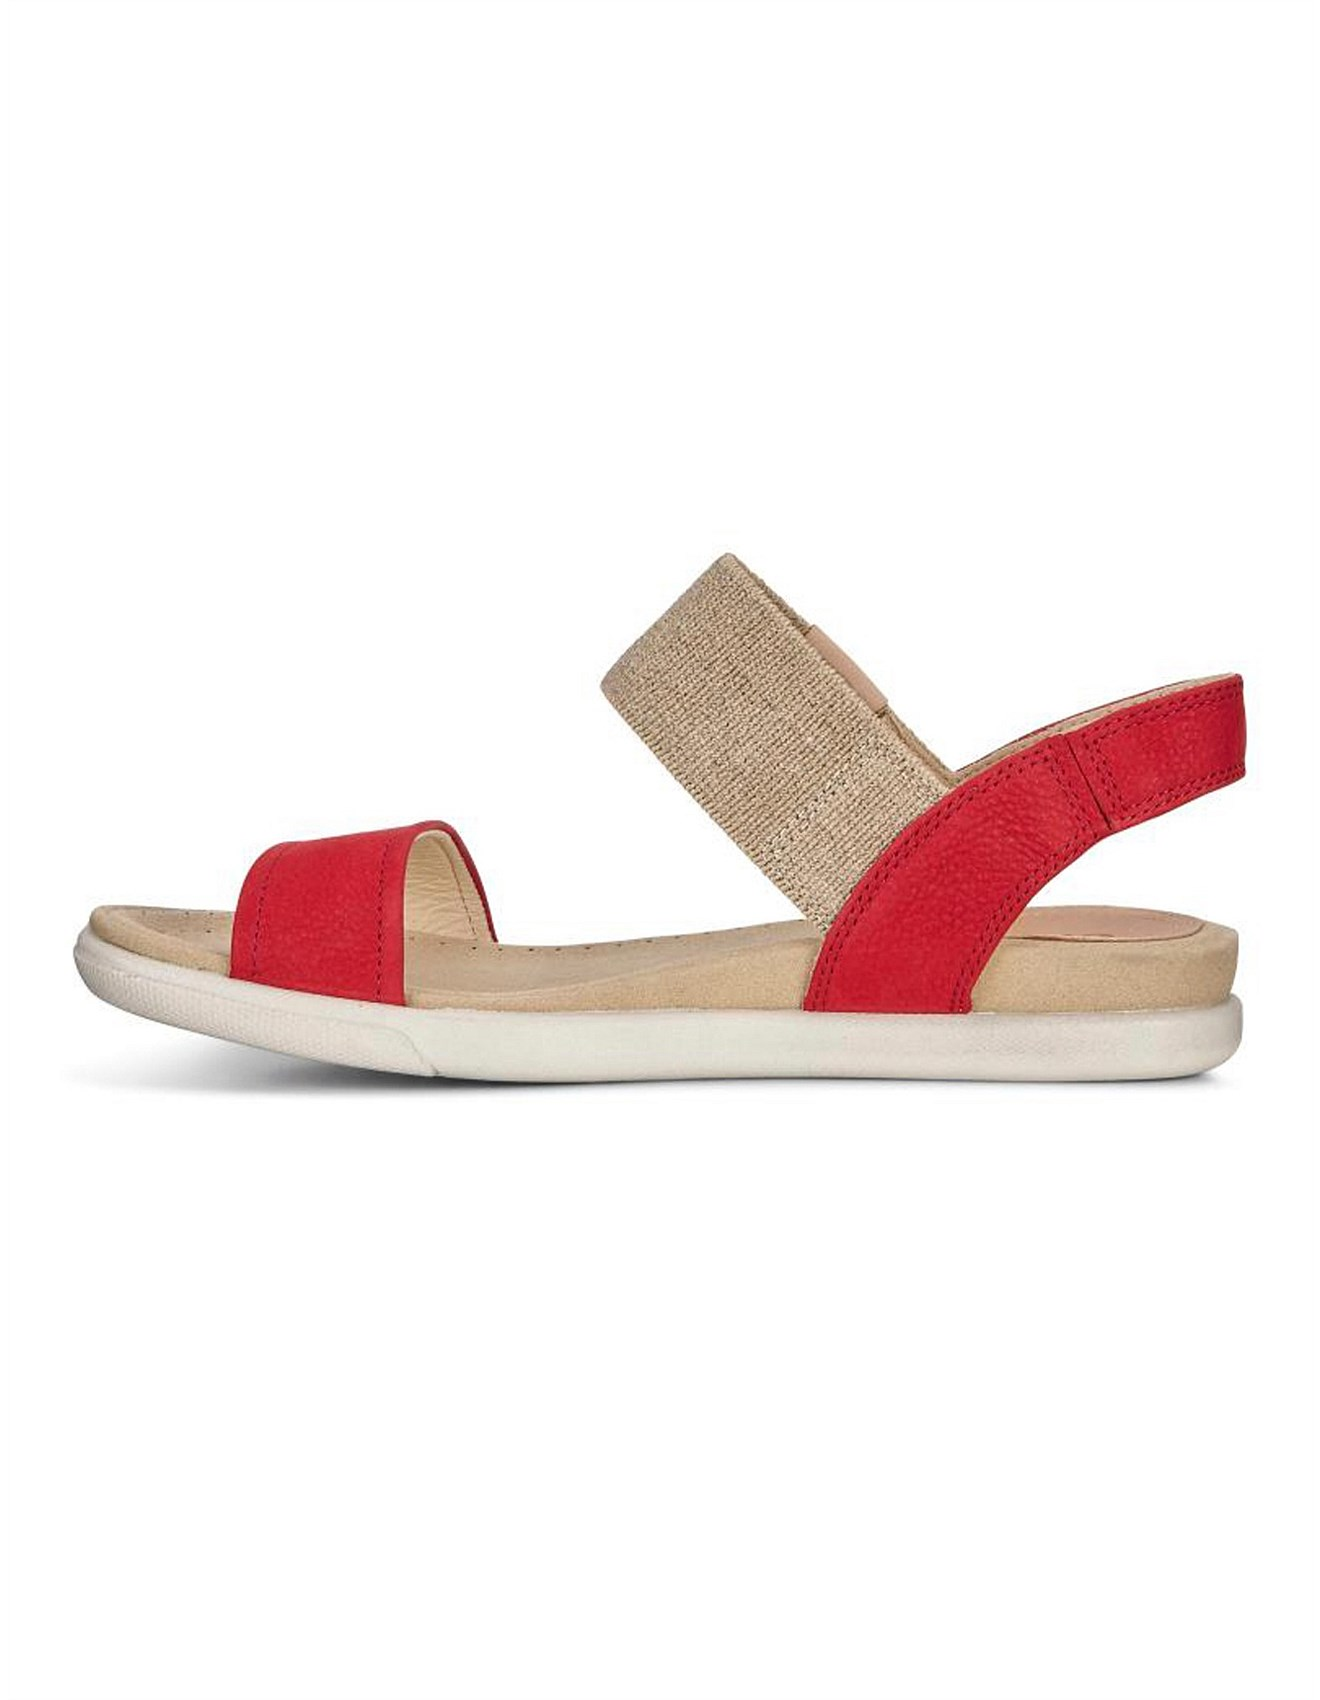 Damara Sandal Chili Red/Powder Cha/Samba Ecco MHKX64